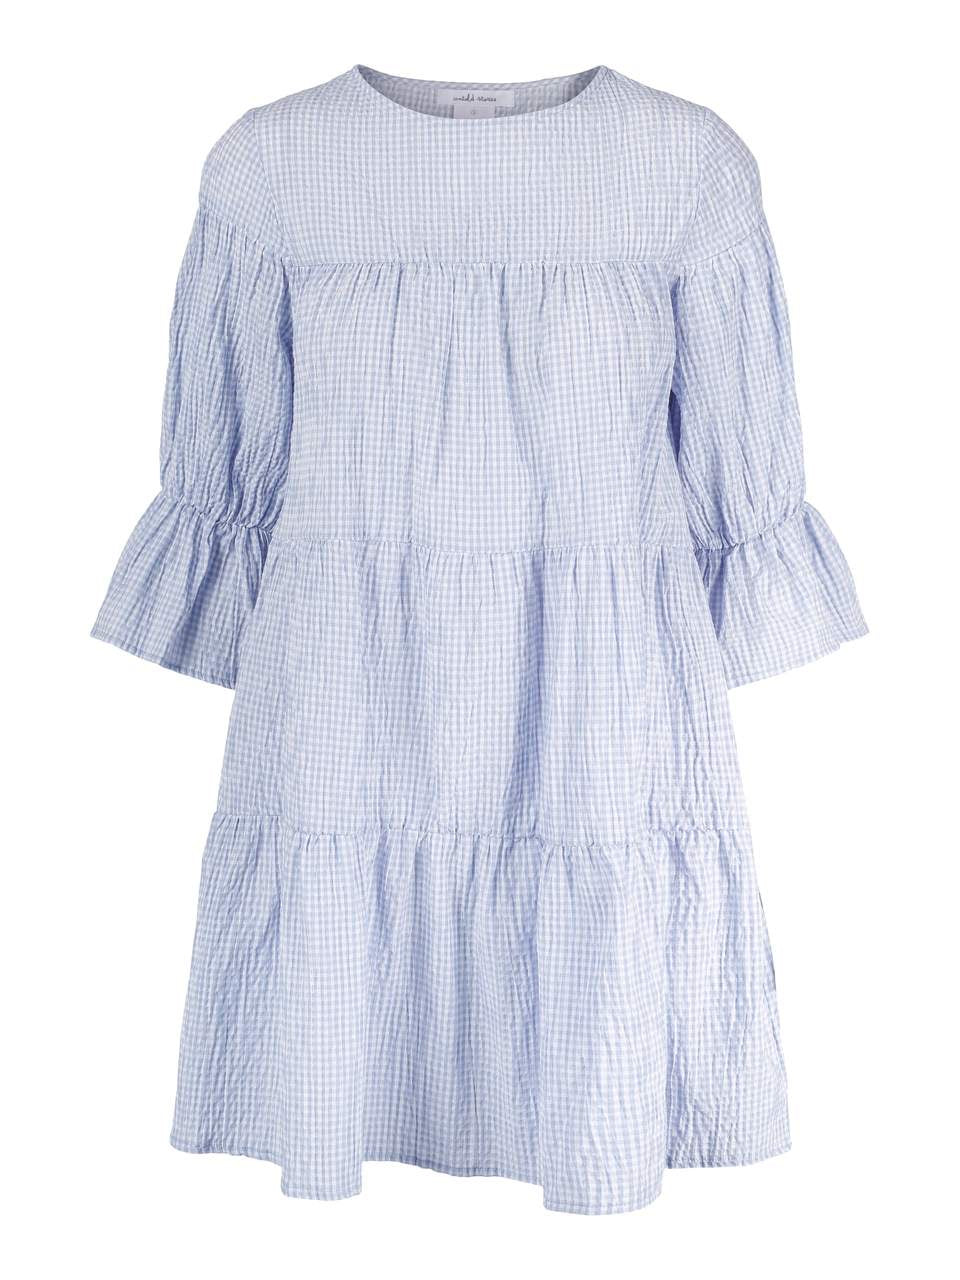 Indiana Dress - Halogen Blue